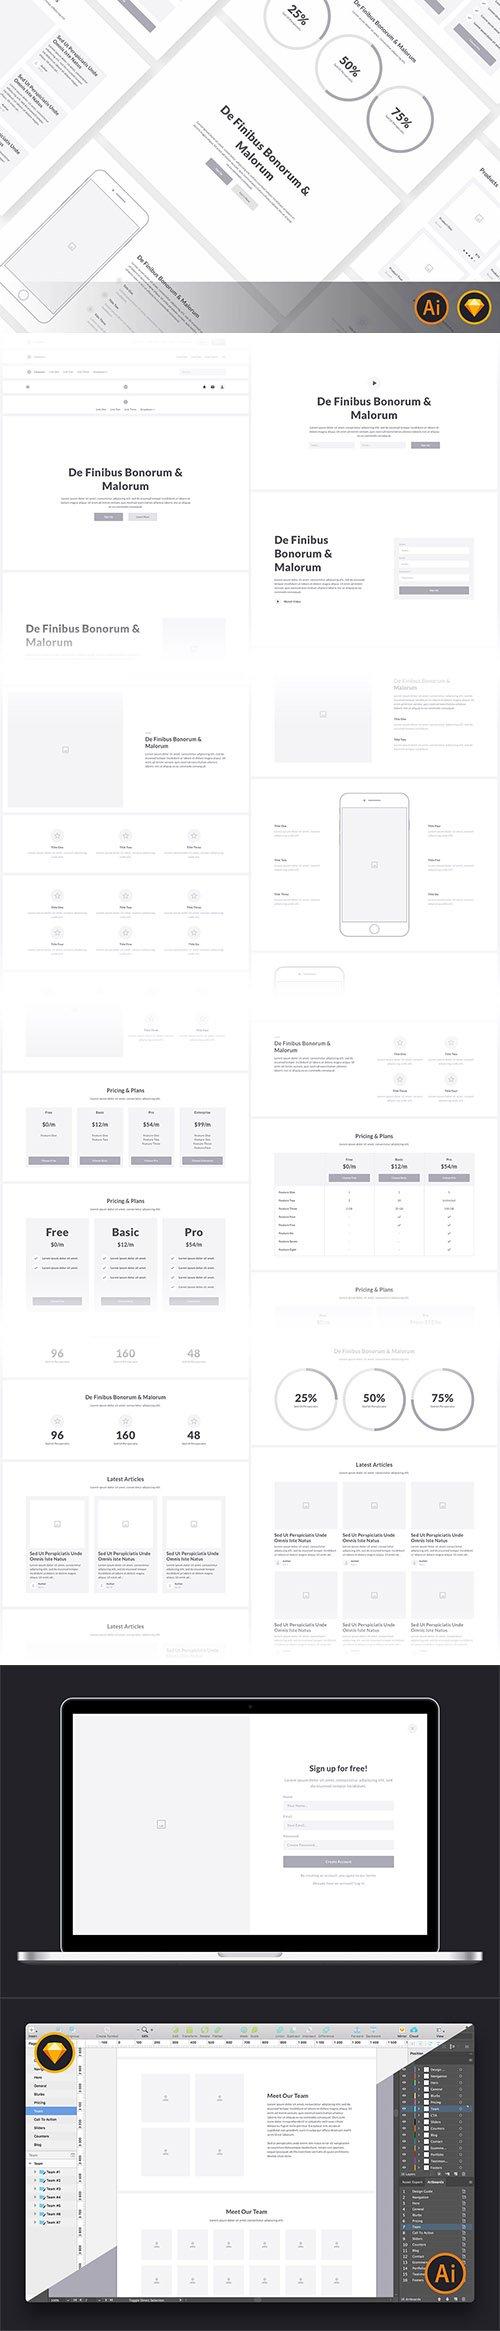 Web Wireframe Kit 2017